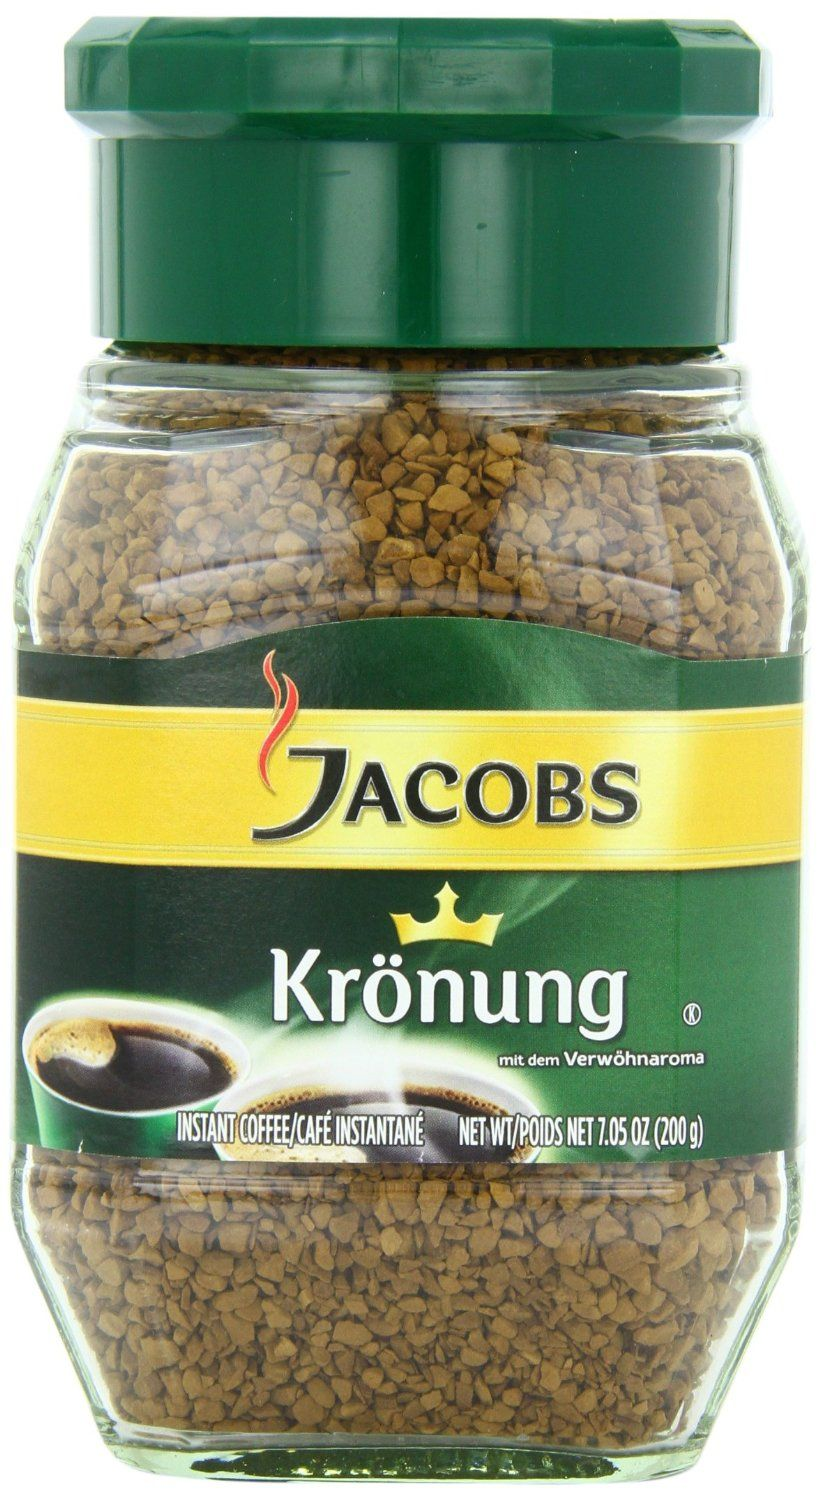 Jacobs Kronung Decaffeinated Busts Myths about Decaffeinated Coffee